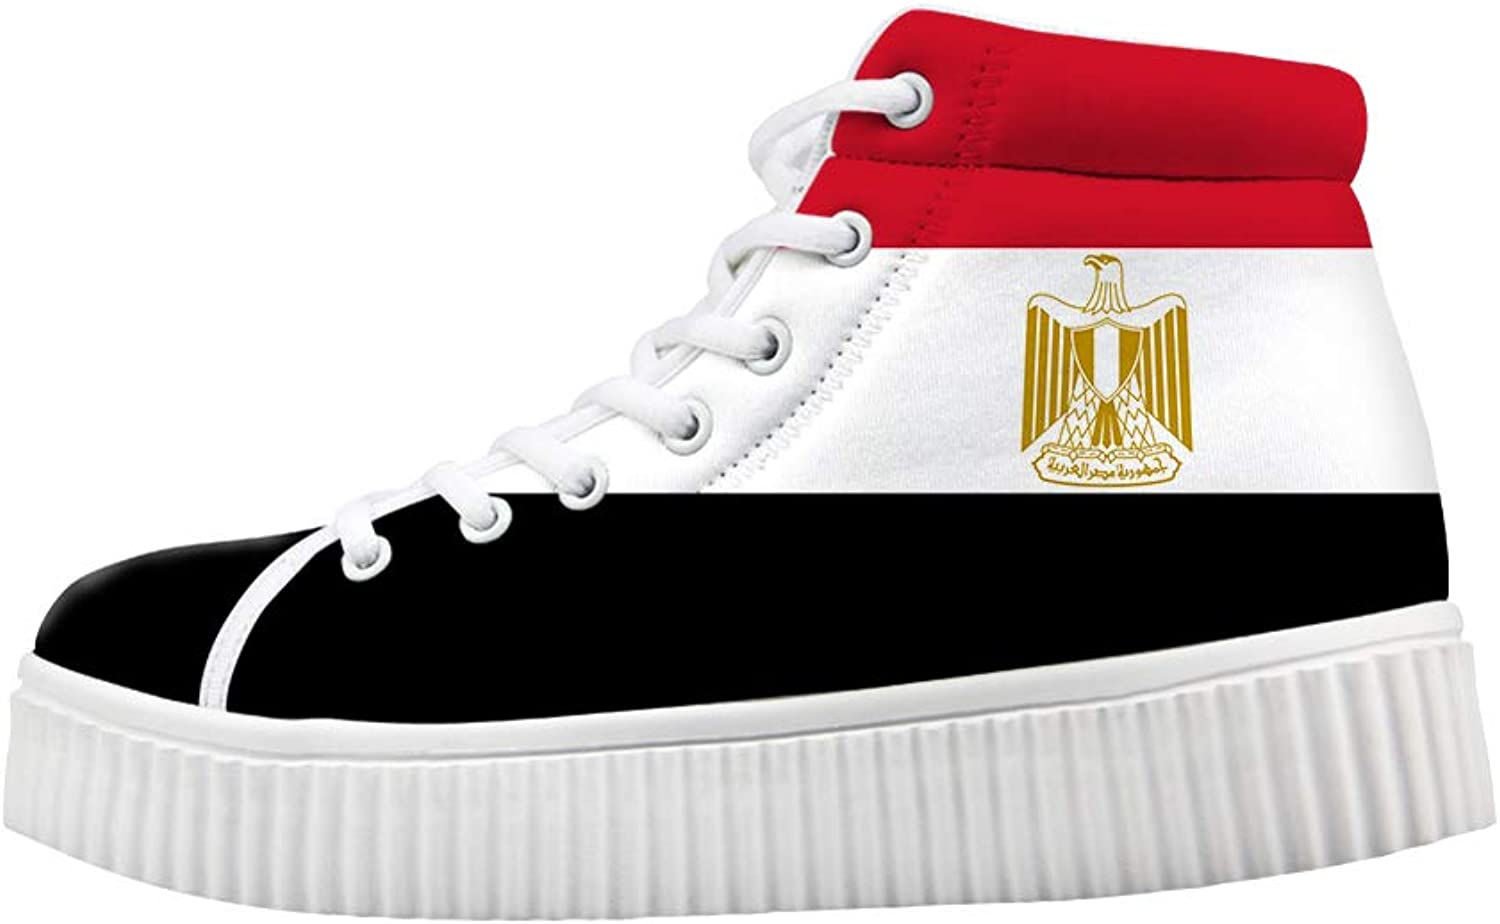 Owaheson Platform Lace up Sneaker Casual Chunky Walking shoes Women Egypt Flag